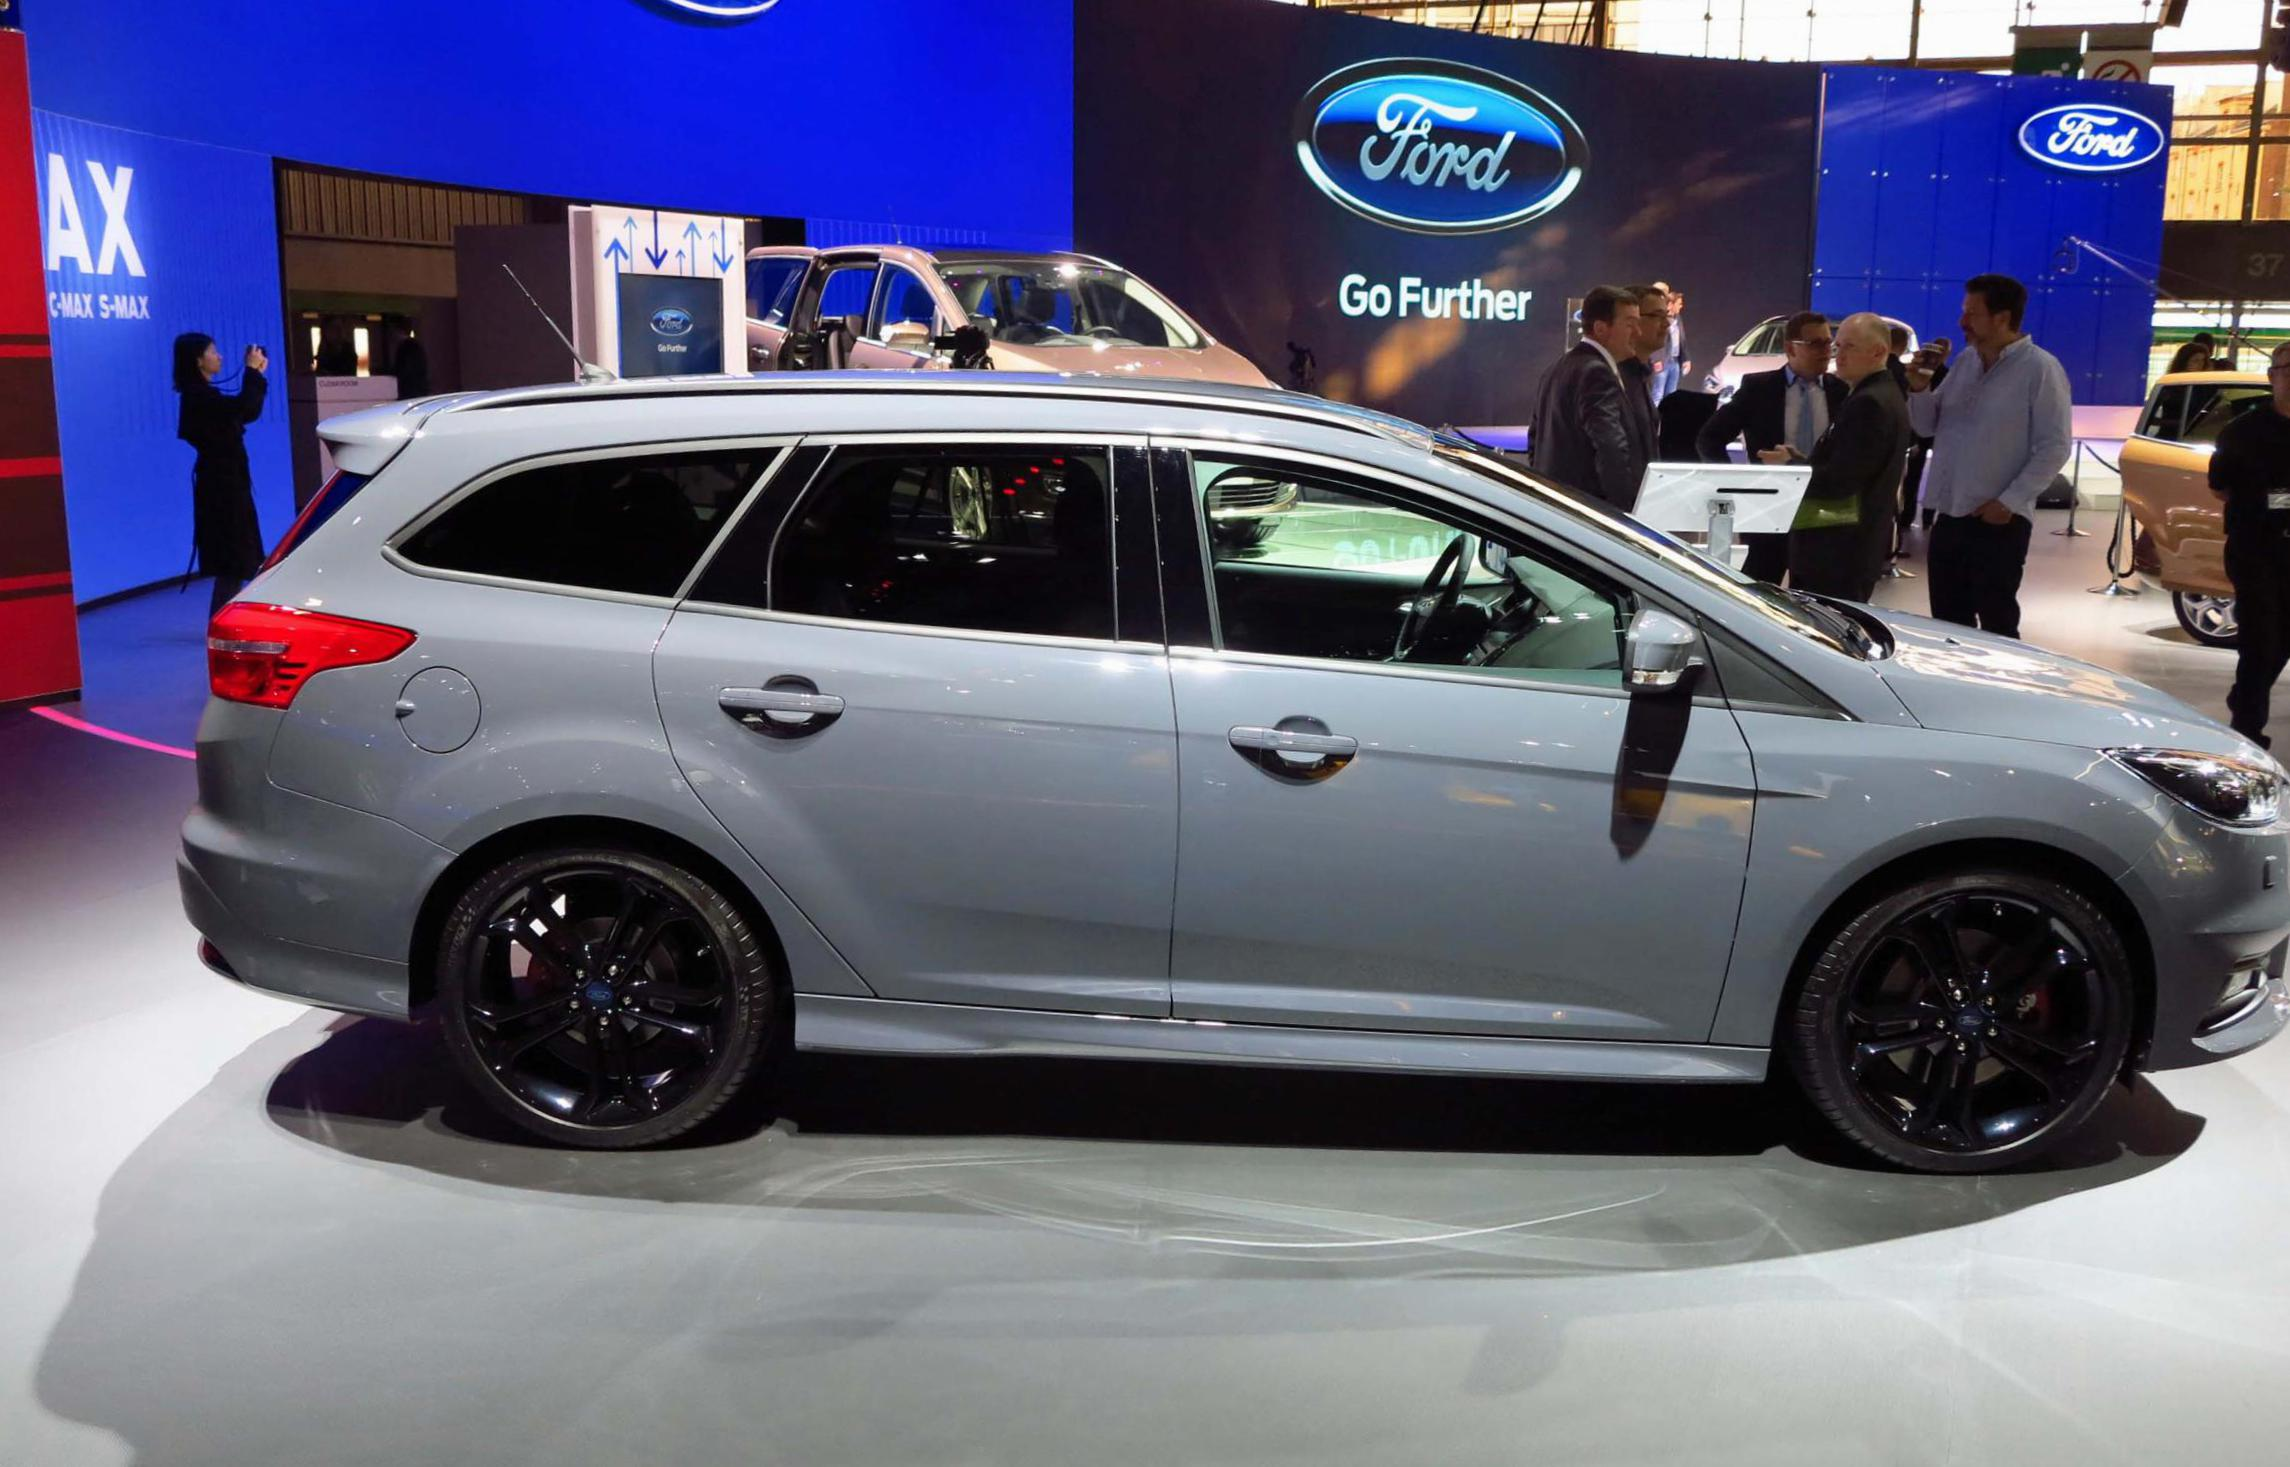 Focus Wagon Ford reviews 2014